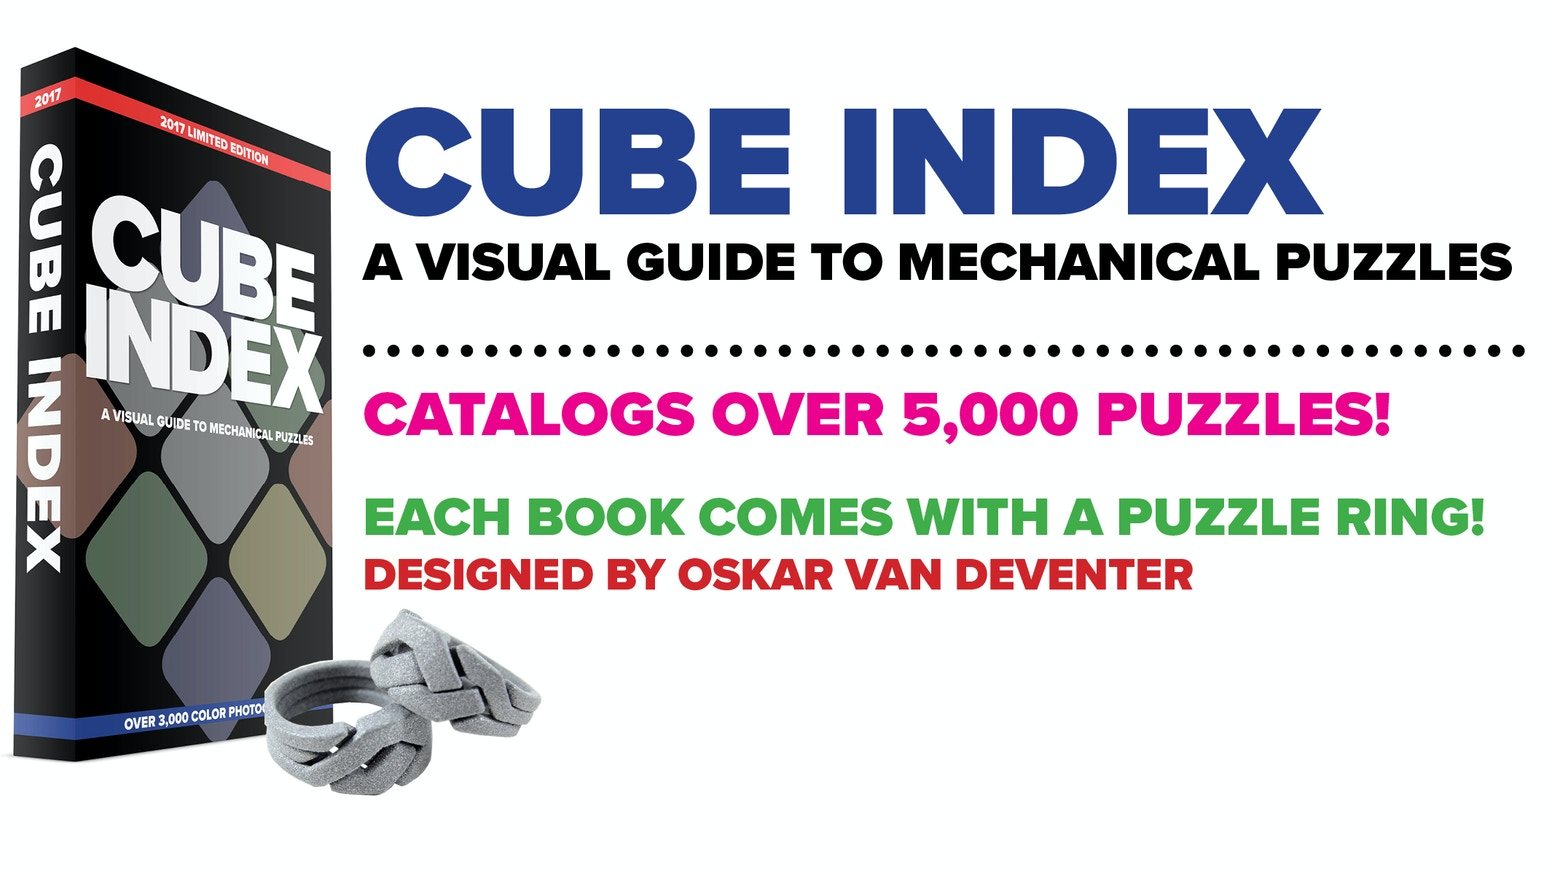 An upcoming book devoted to visually cataloging over 5,000 mechanical and twisty puzzles. Limited Edition! Comes with a puzzle ring!